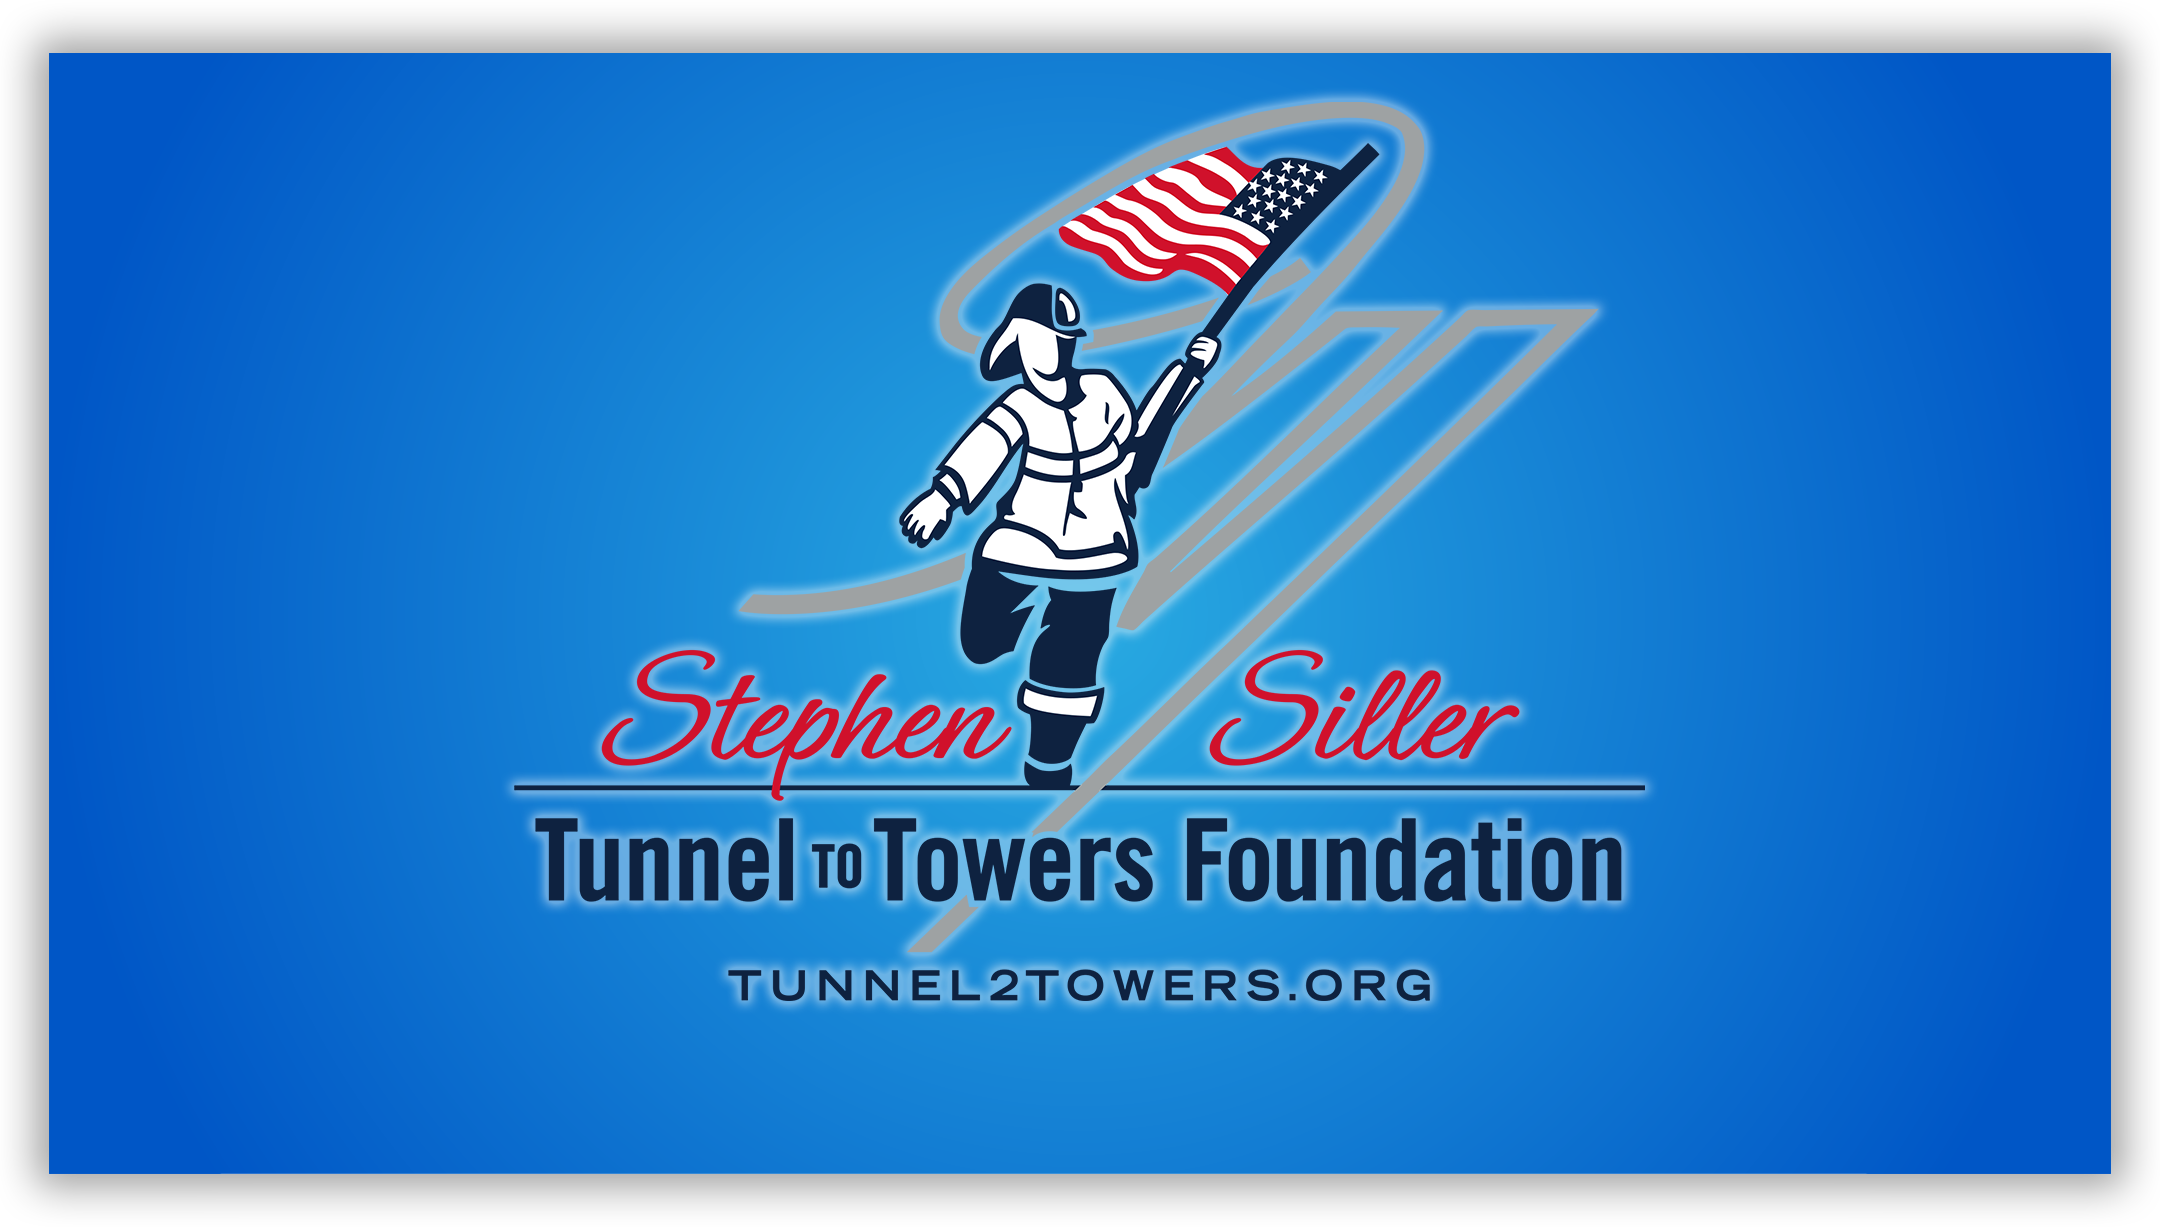 Donations for Tunnel to Towers